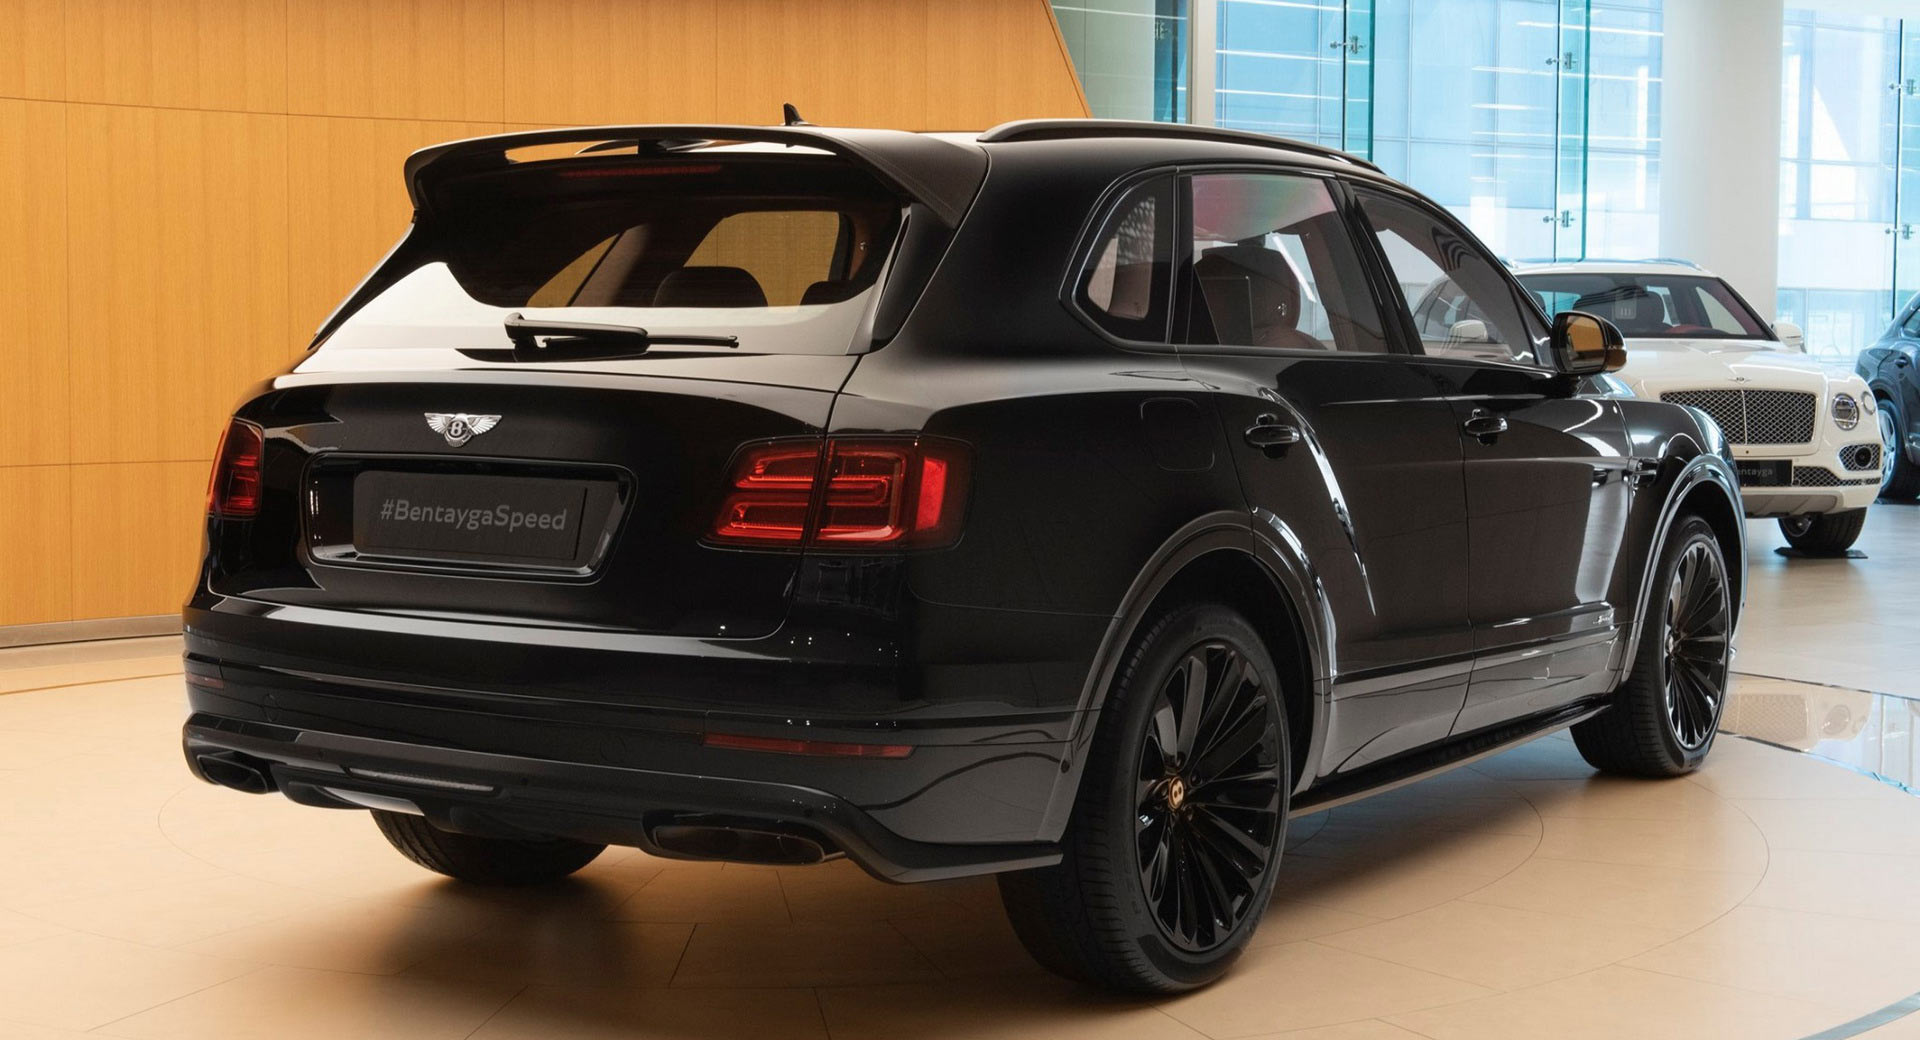 All Black Bentley Bentayga Speed Is How The World S Fastest Suv Stays Inconspicuous Carscoops